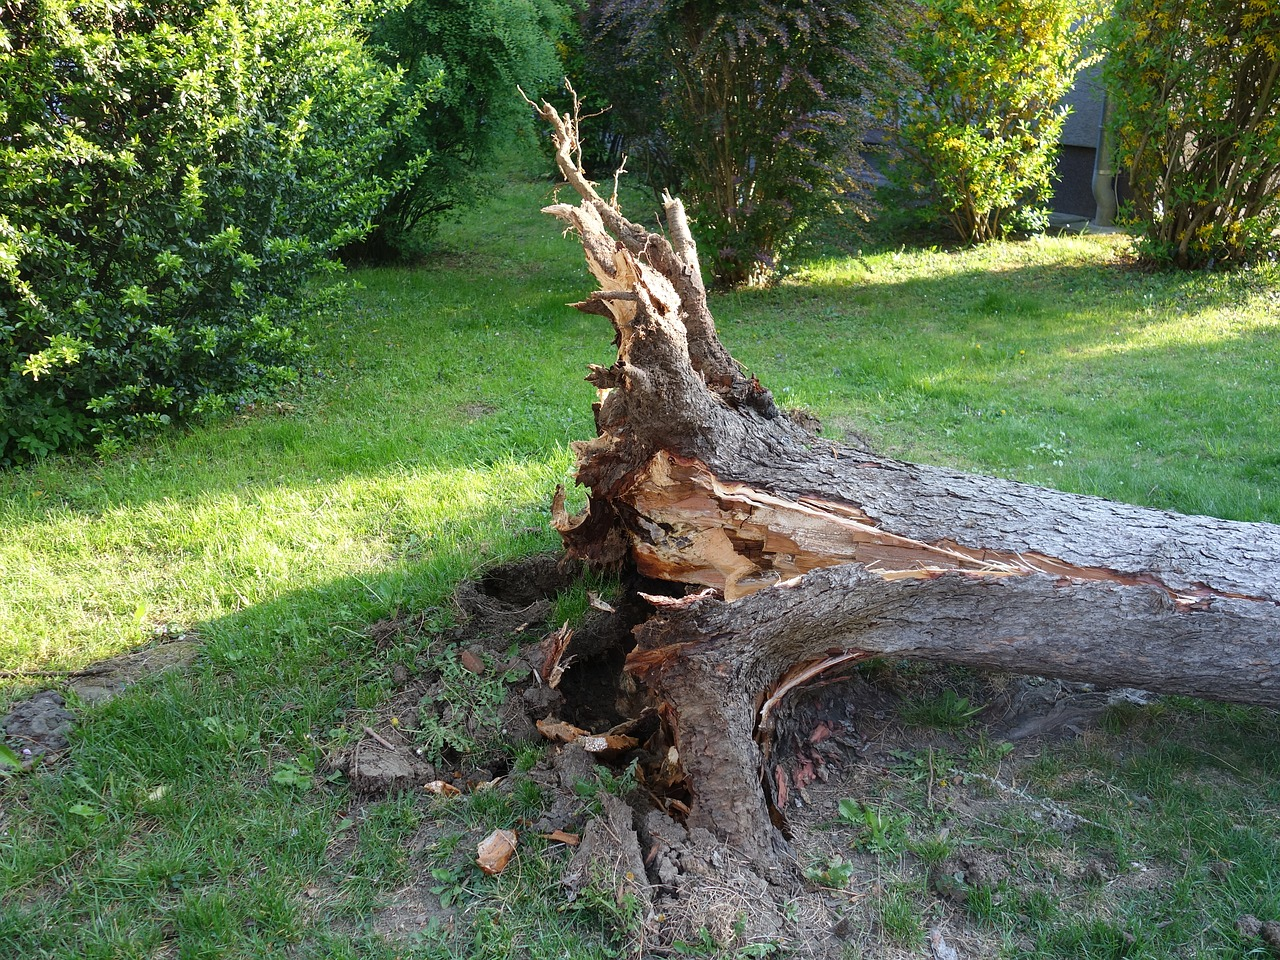 An overturned tree